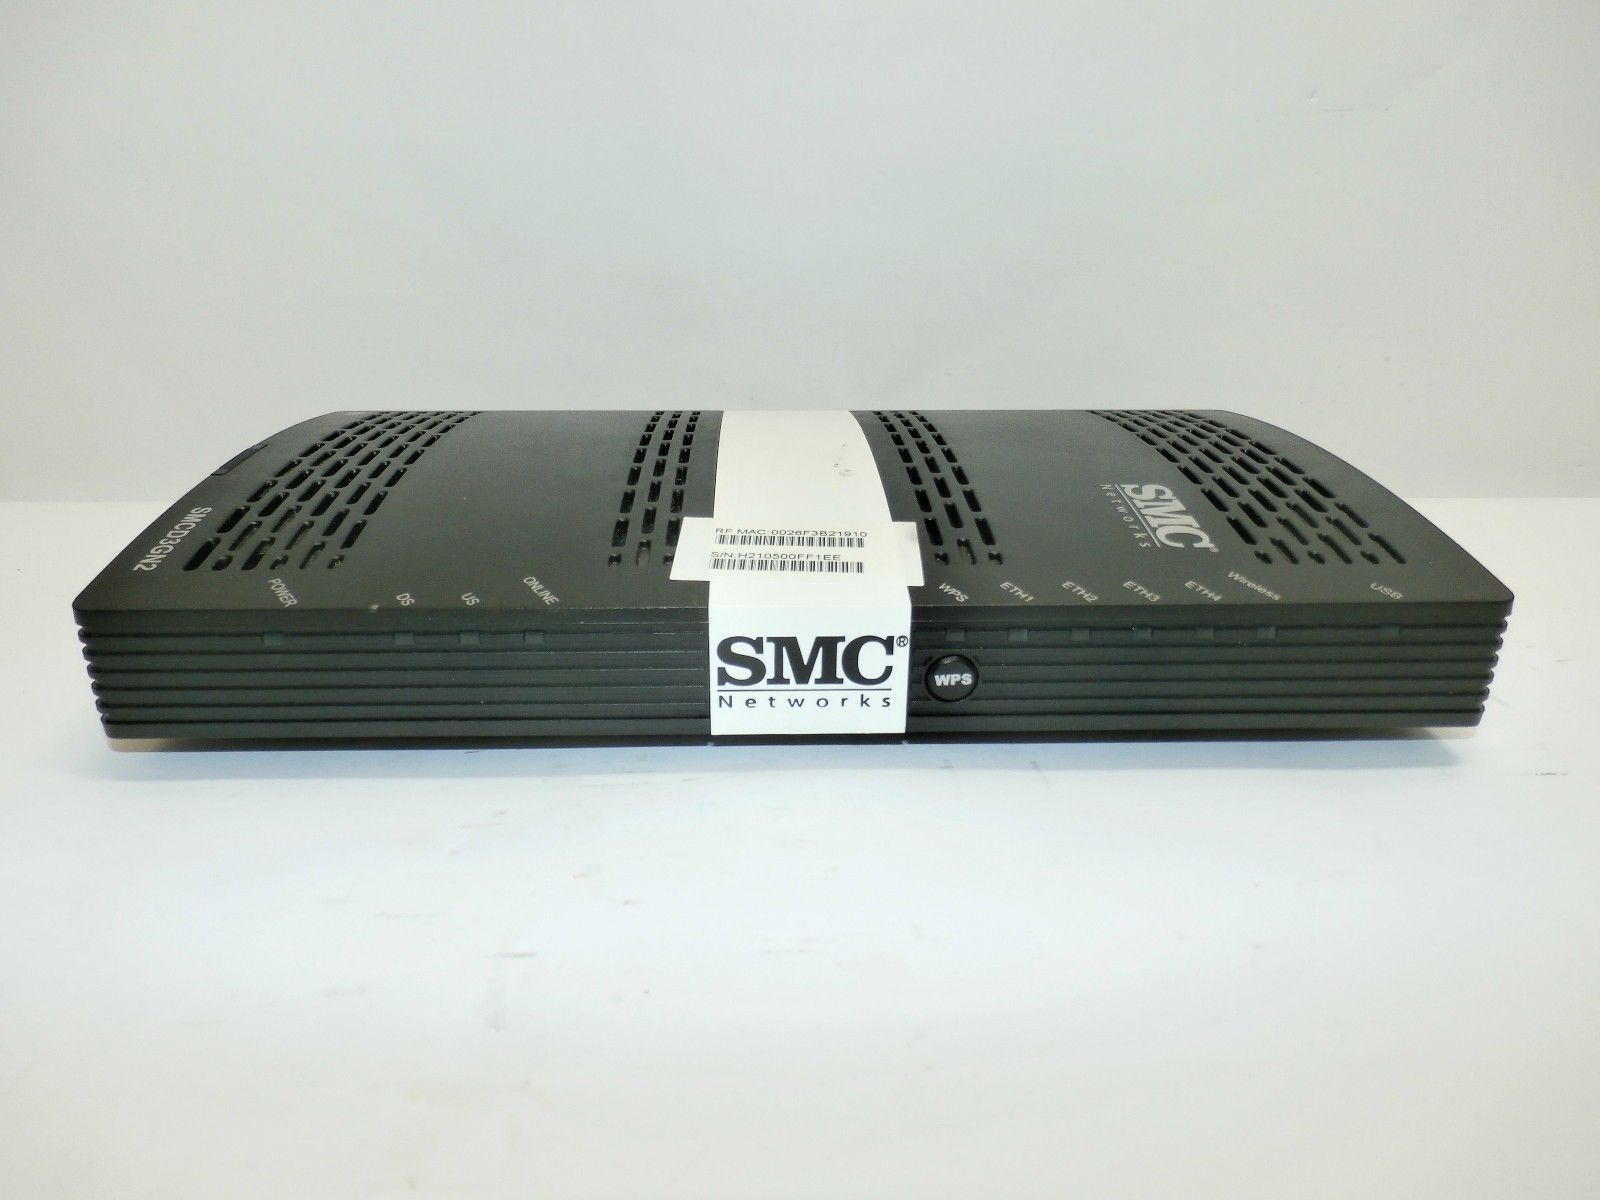 SMC Networks SMCD3GN2-BIZ Wireless Cable and 50 similar items